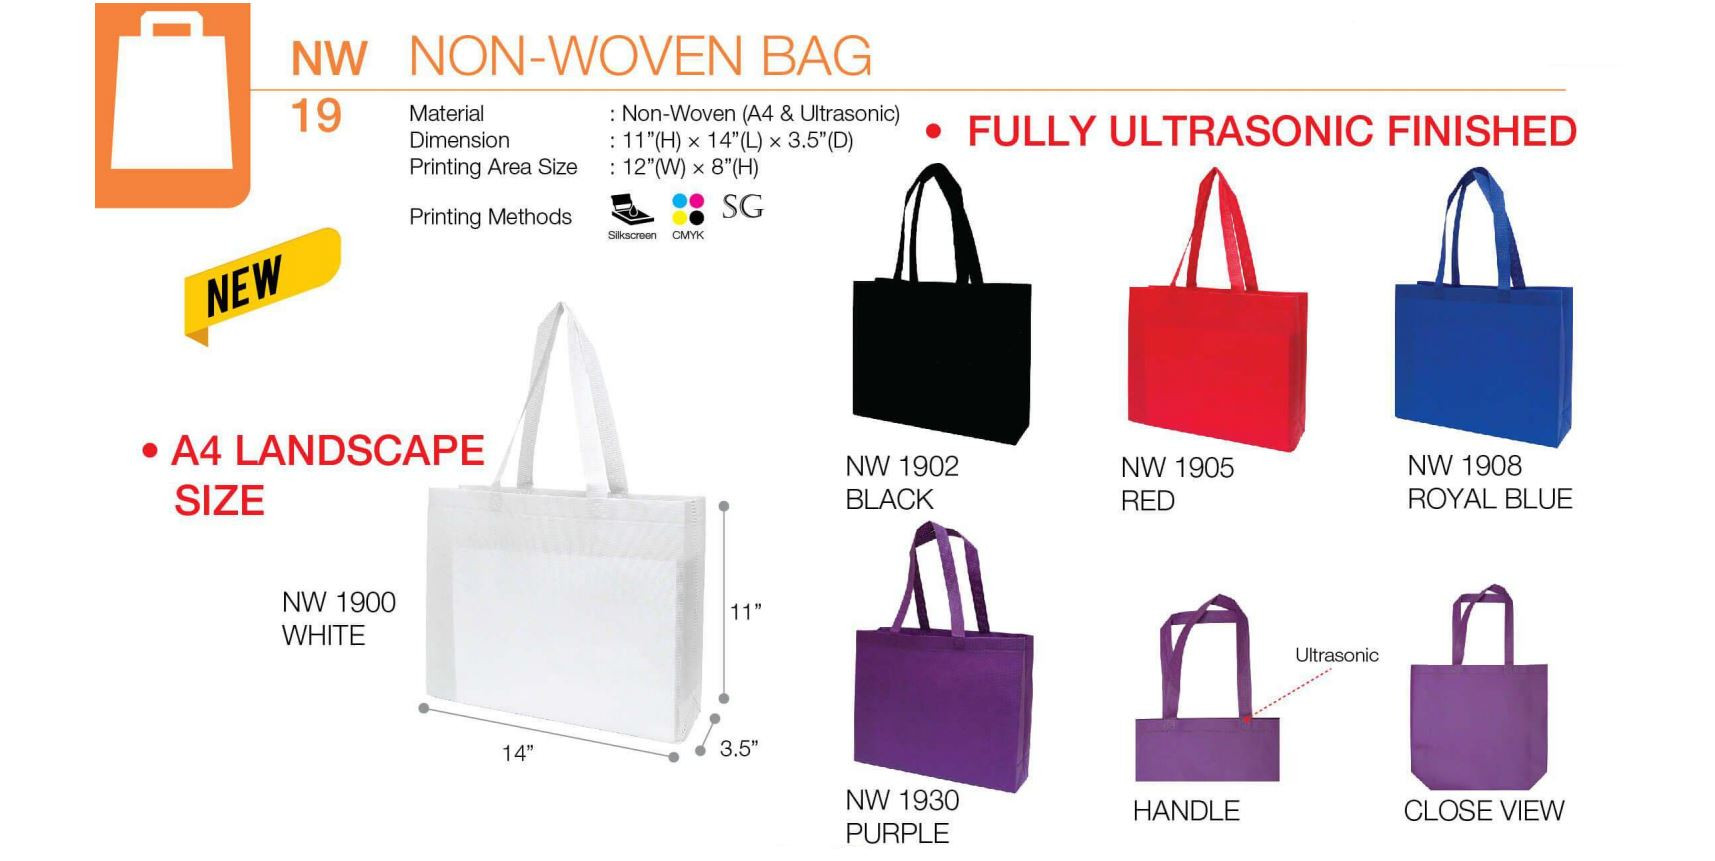 NW19 Series (A4 Landscape Non-Woven Bags)